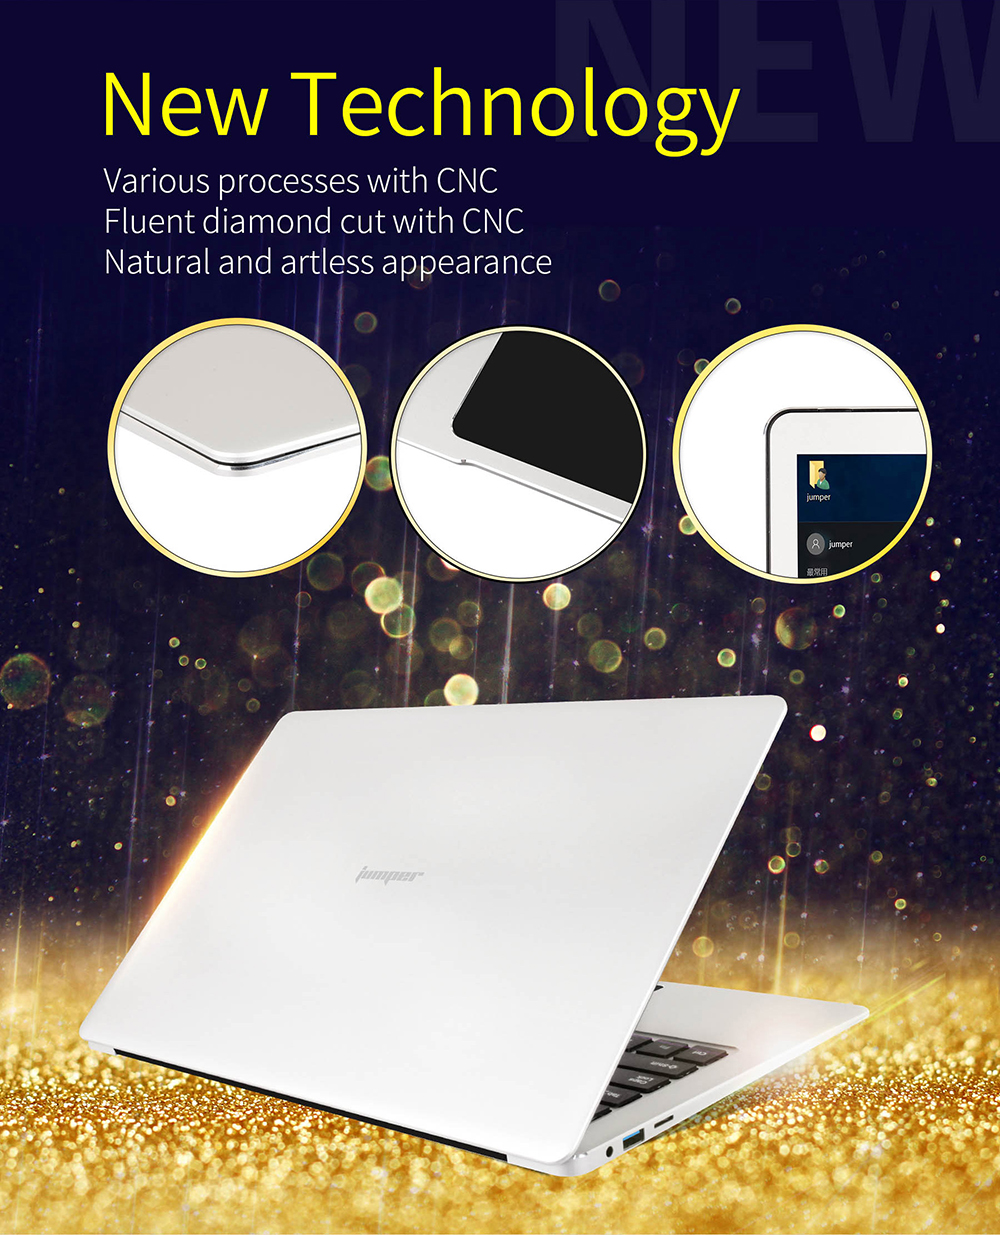 2  Jumper EZbook three Professional laptops 13.three Inch tablets Intel Apollo N3450 Quad Core 6GB DDR3 64GB eMMC Home windows 10 pocket book computador HTB1SLJ7RXXXXXc2XXXXq6xXFXXX7